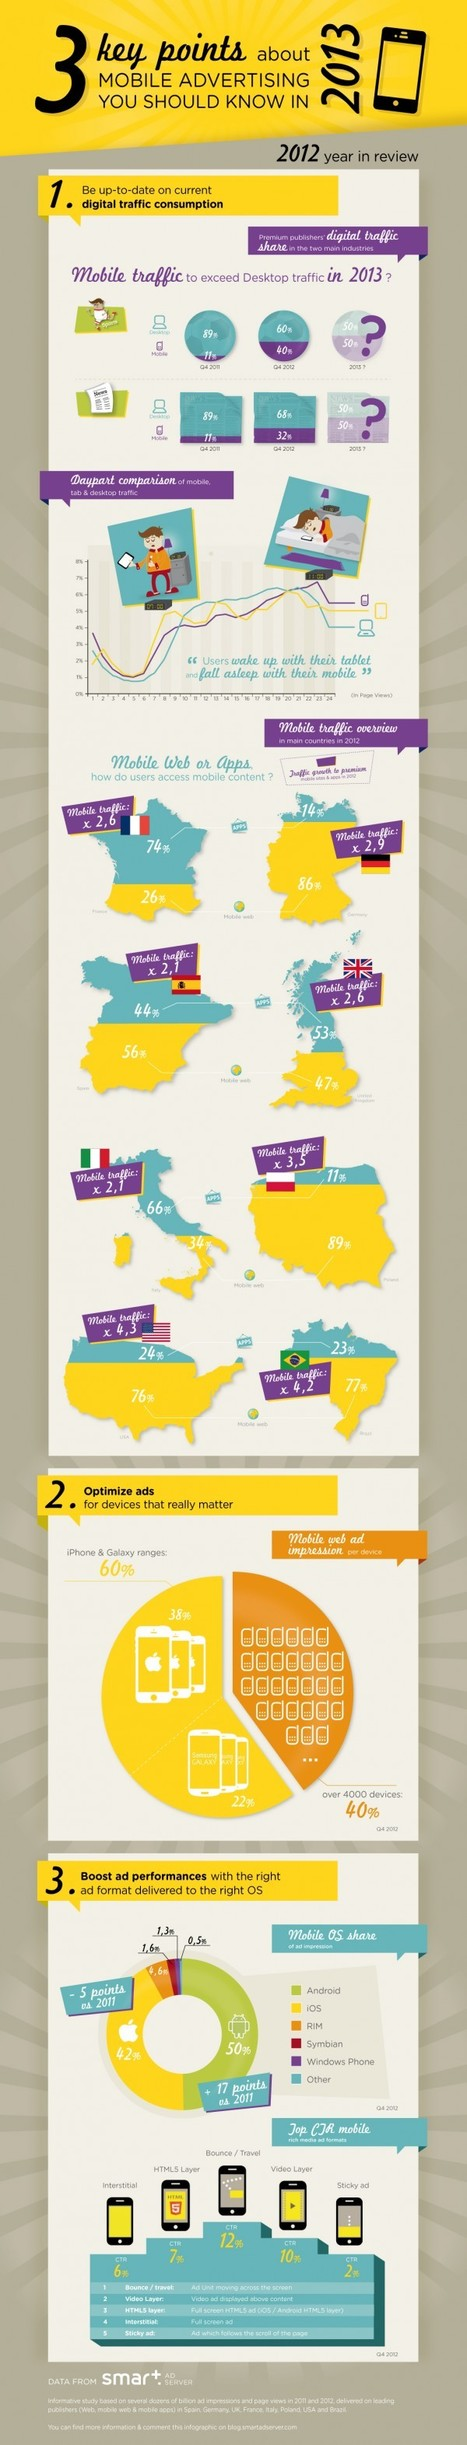 MWC INFOGRAPHIC: 3 points about mobile advertising in 2013 | Marketing & Webmarketing | Scoop.it